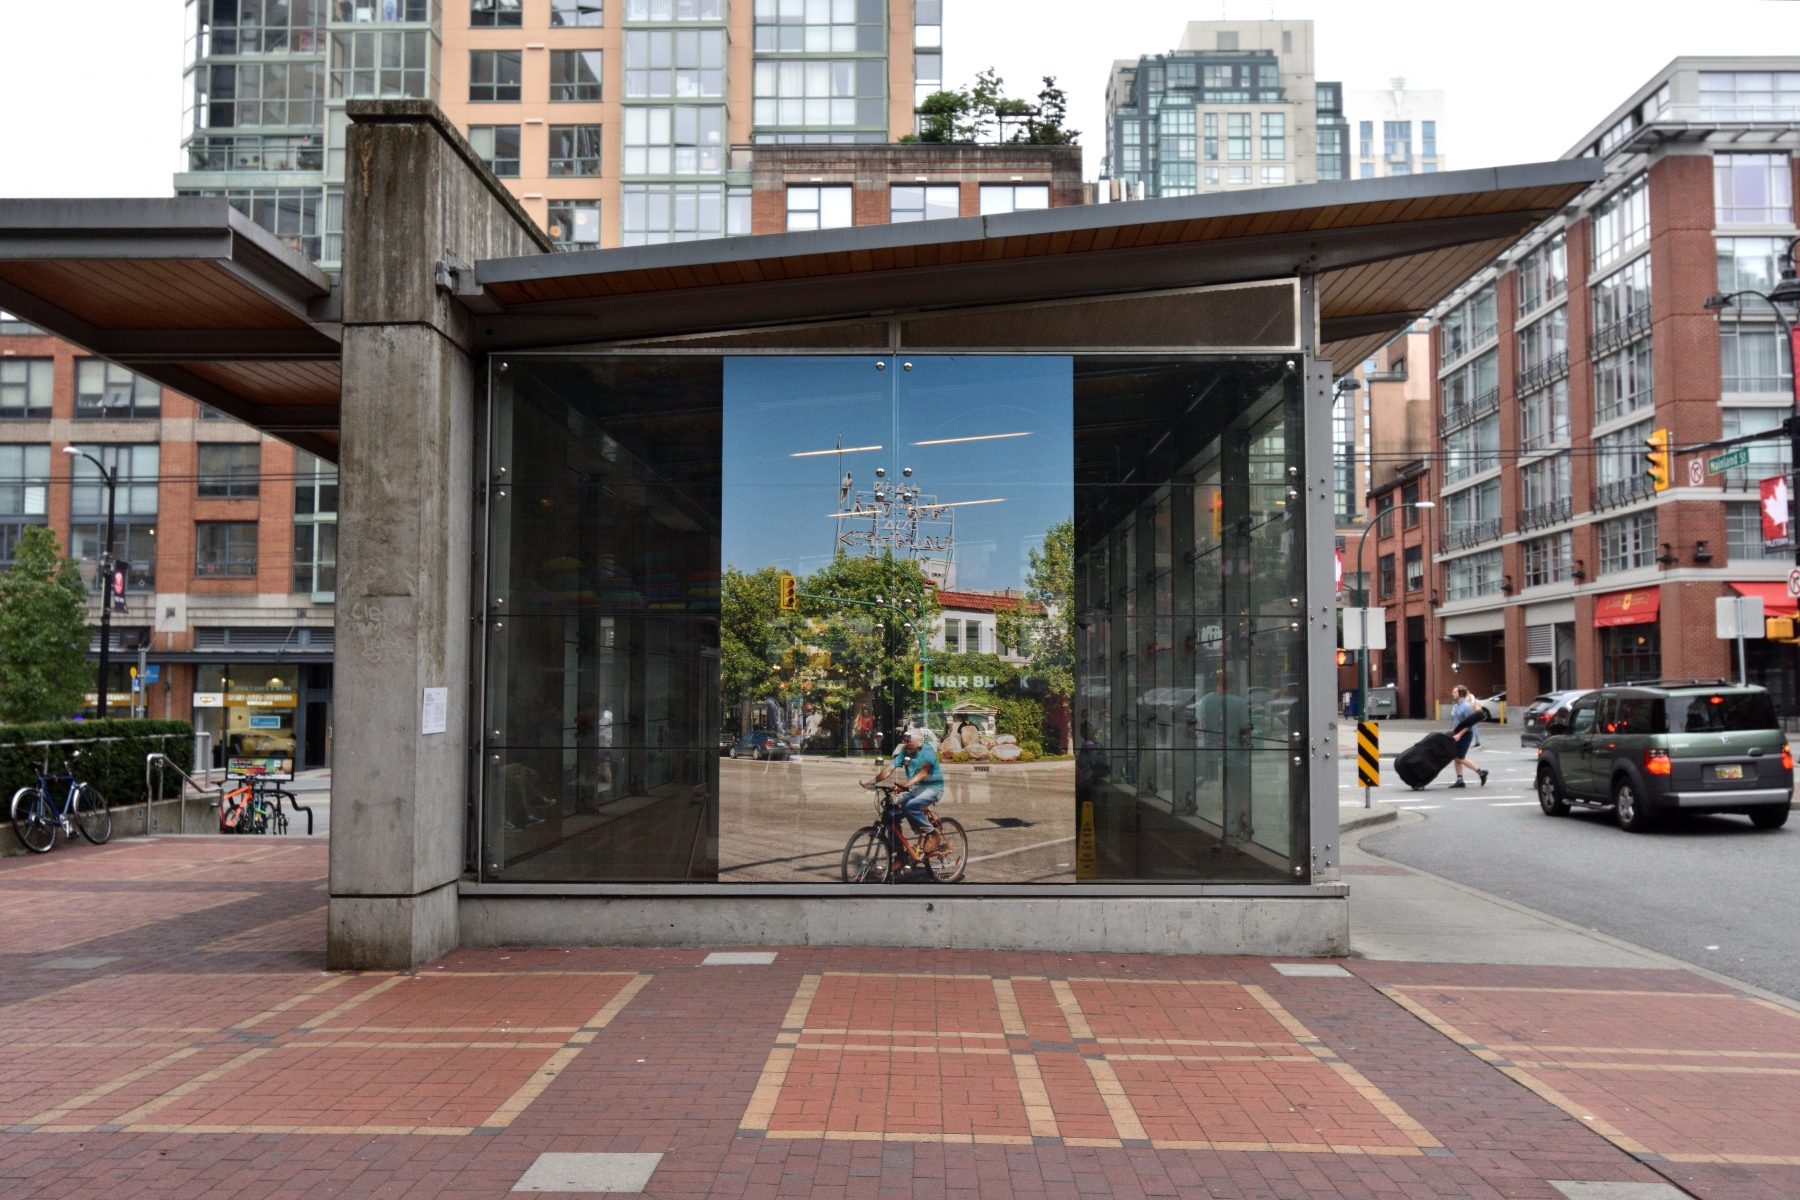 A colour photographic print is presented on the glass face of the SkyTrain station facade. Around the station, the surrounding environment (condo buildings, cars on the street, bricked pathways, grey sky) can be seen.